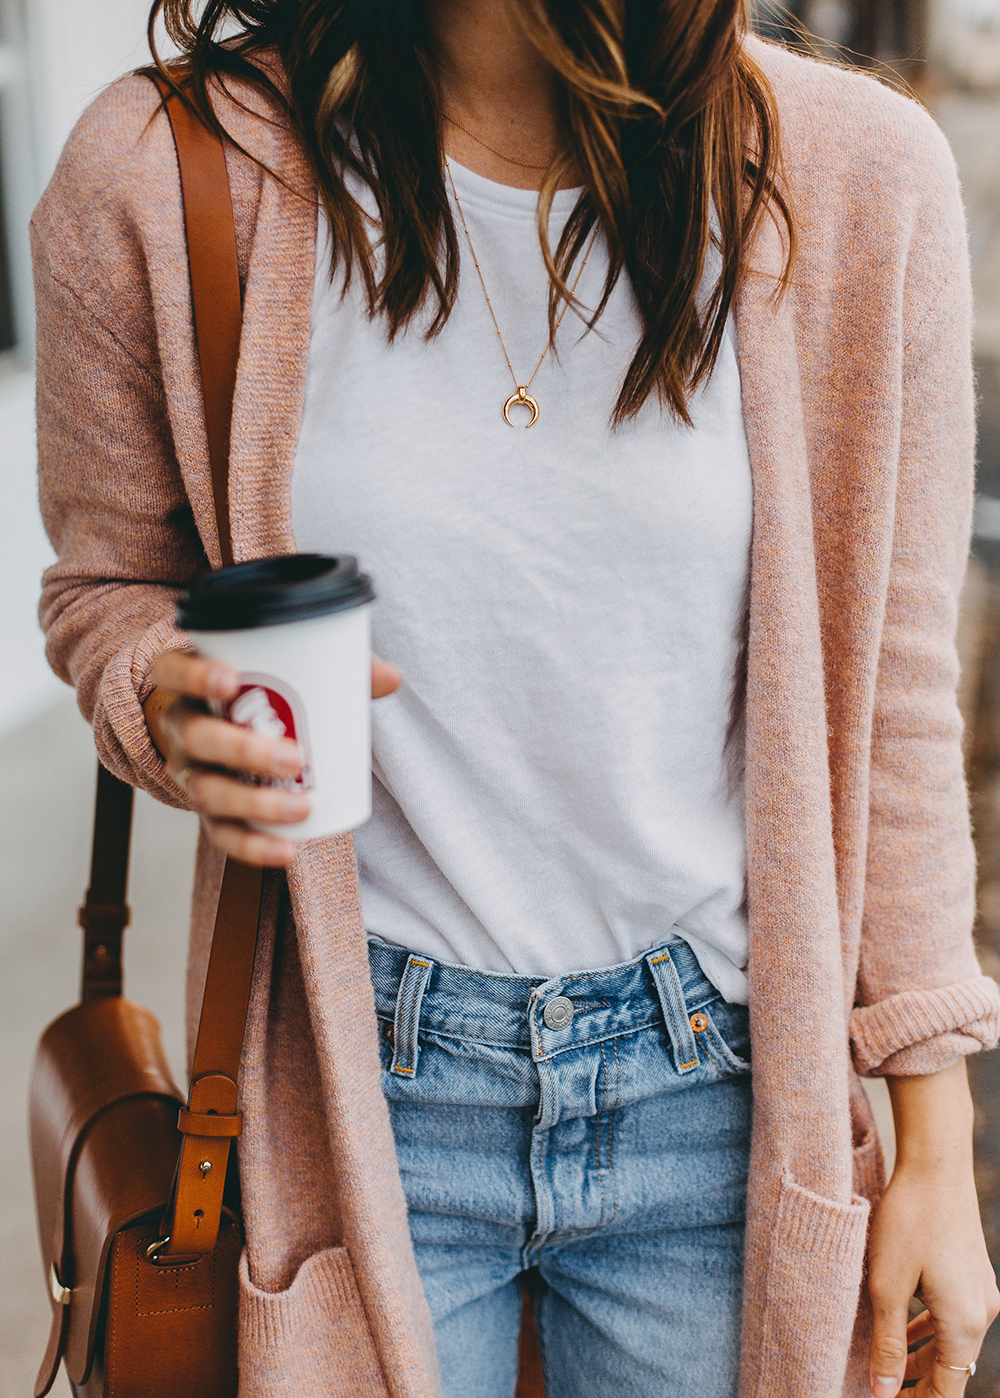 livvyland-blog-olivia-watson-austin-texas-fashion-blogger-spring-transition-wardrobe-pieces-madewell-blush-cardigan-tan-mules-7